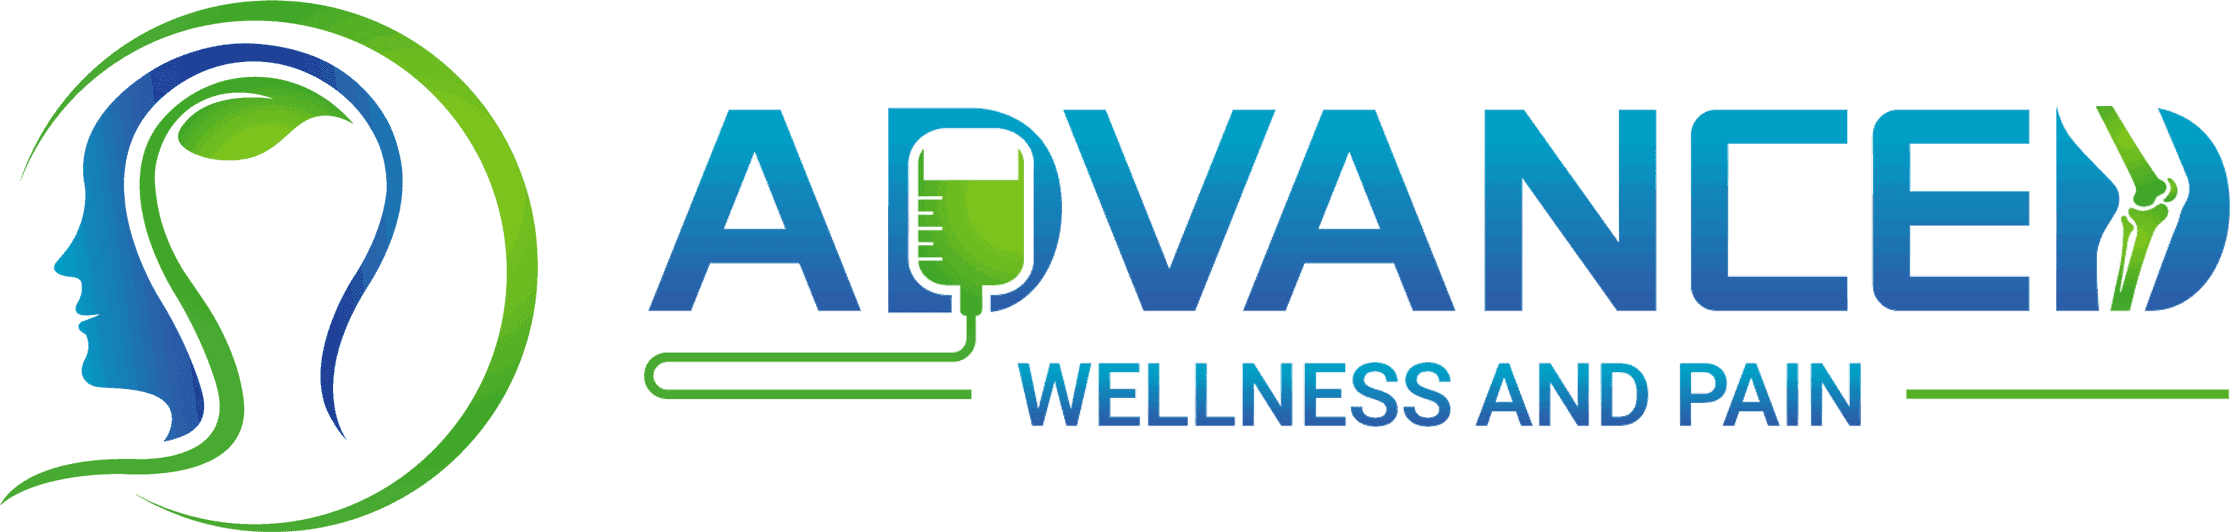 Advance Wellness & Pain